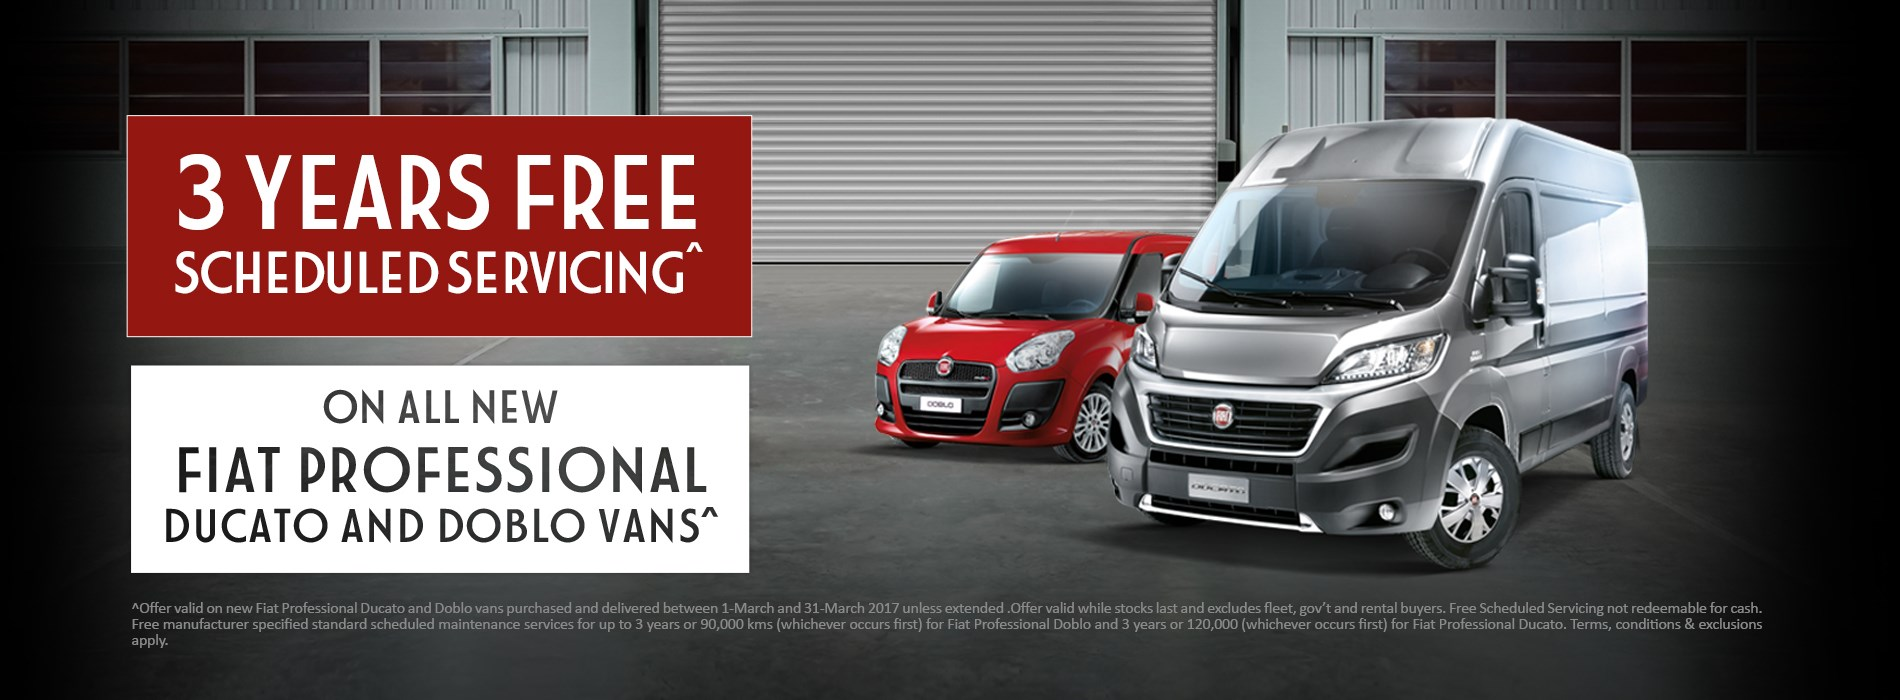 Fiat Professional 3 Years Free Servicing Offer